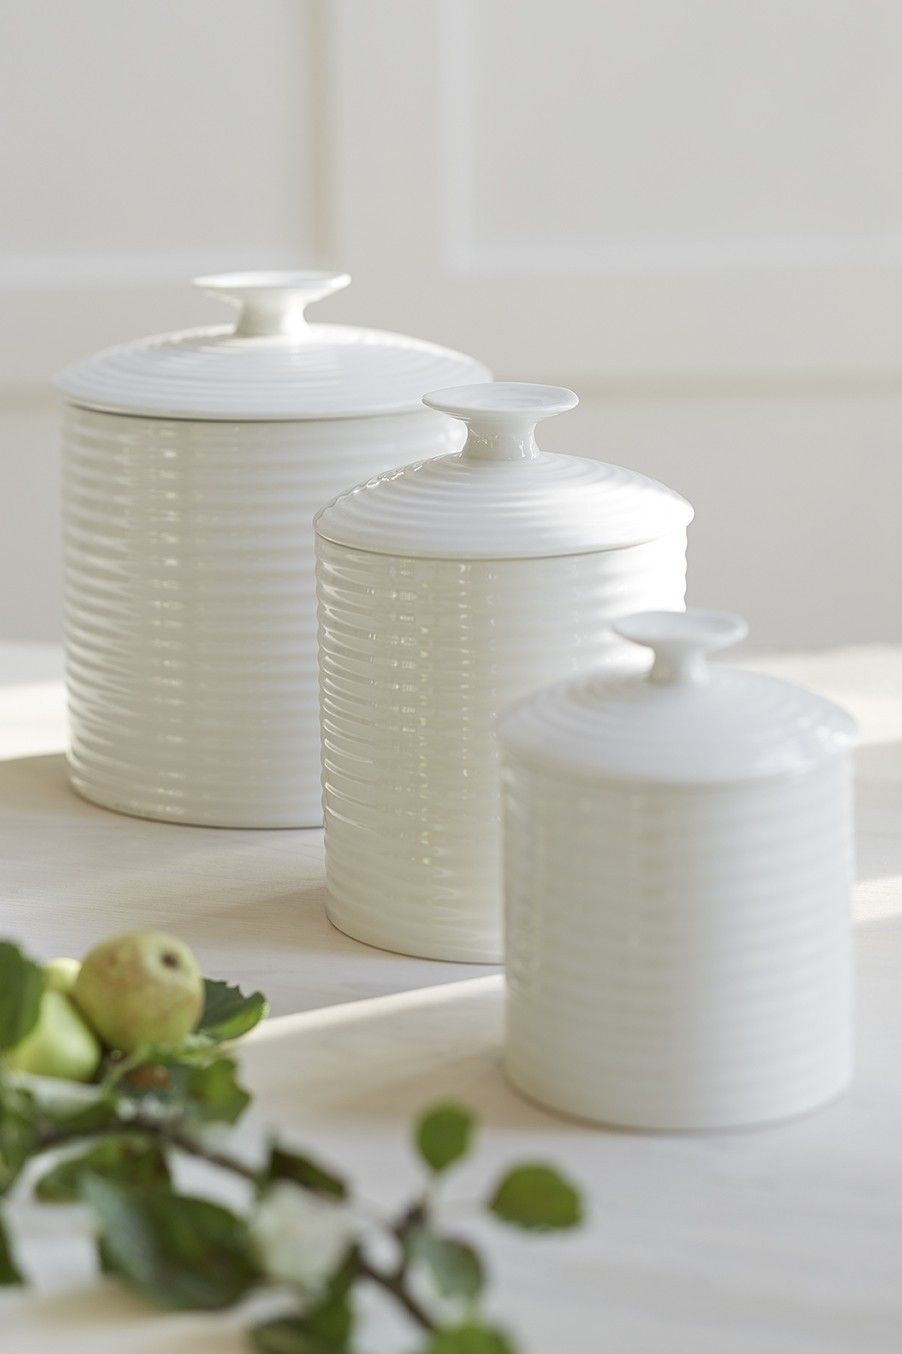 White Porcelain Storage Jars | Sophie Conran Shop | Home | Pinterest ...